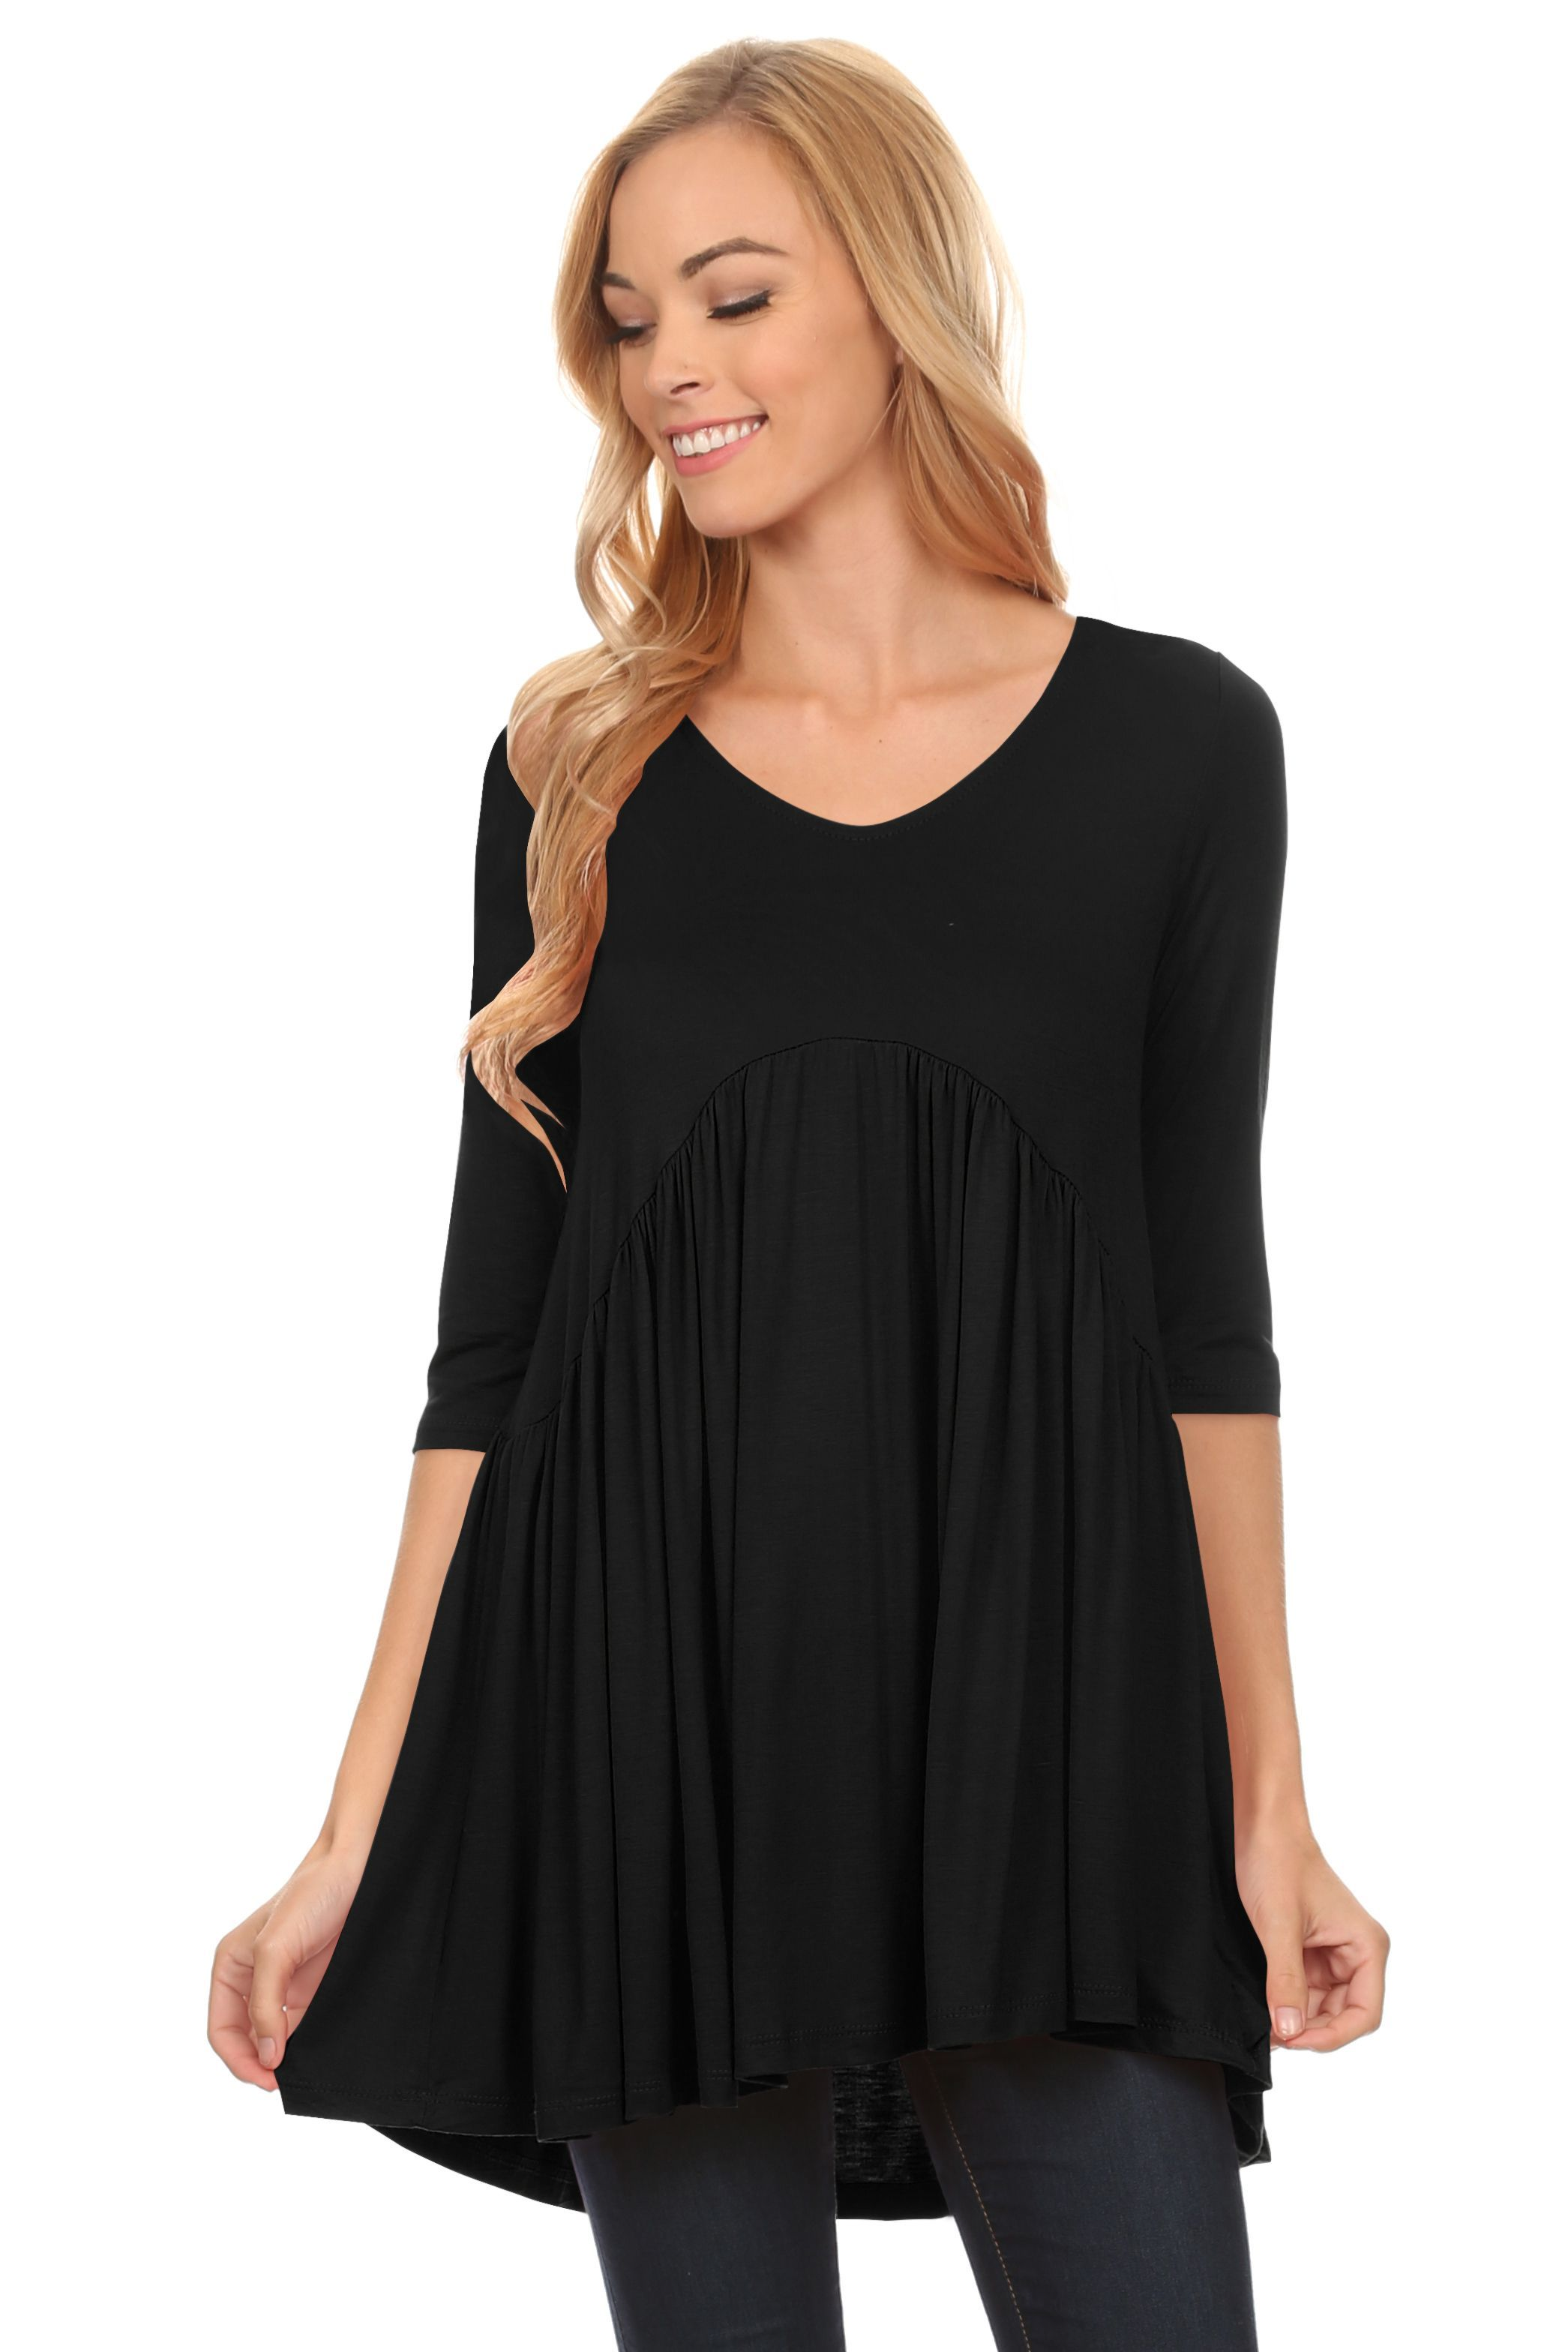 Simlu tunic top mini dress with sleeves long tunic tops for women